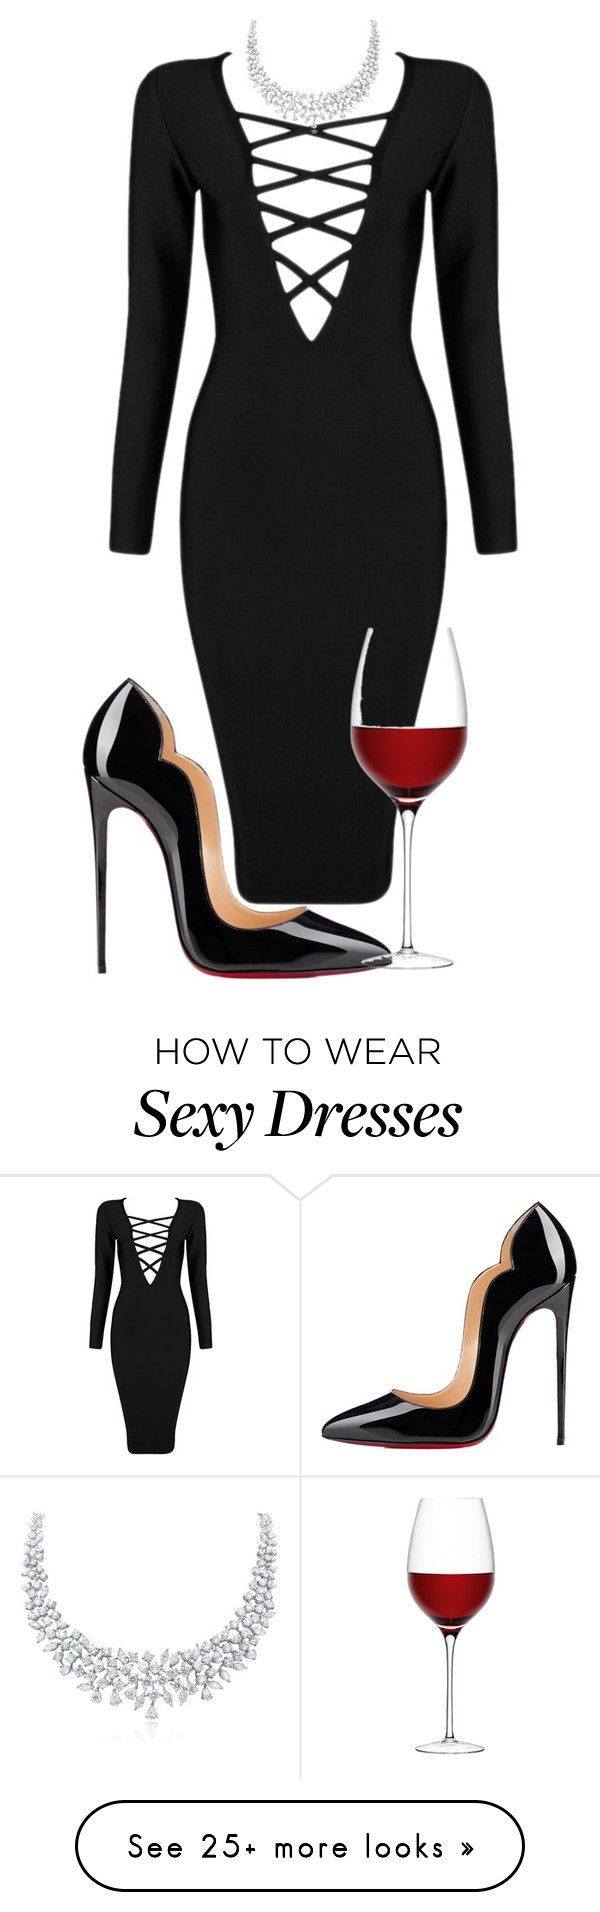 sexy elegance by onedirectionperf on polyvore featuring